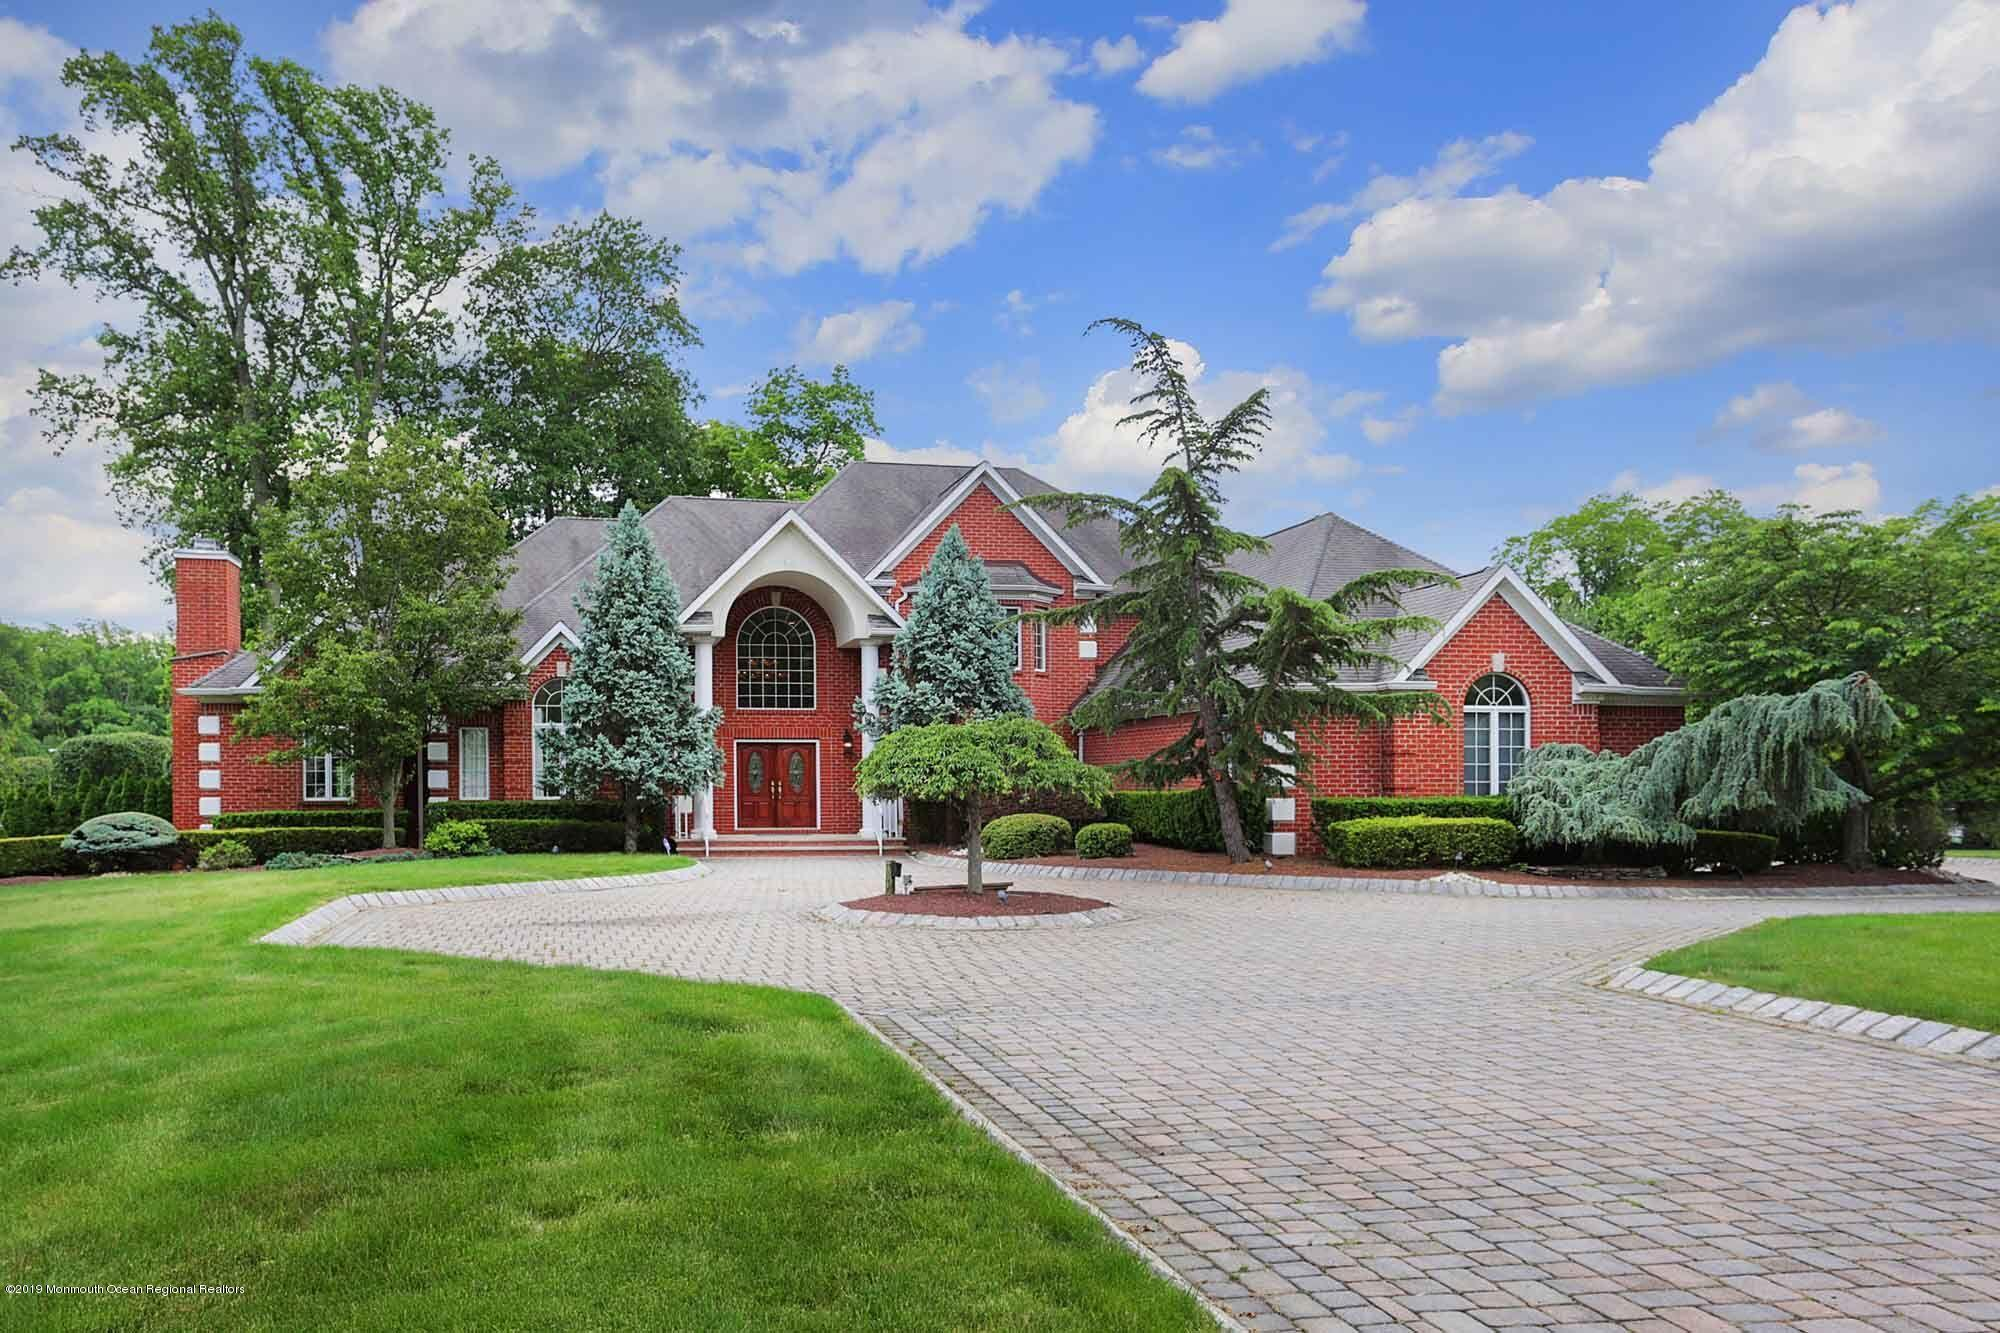 Photo of 16 Maacka Drive, Holmdel, NJ 07733